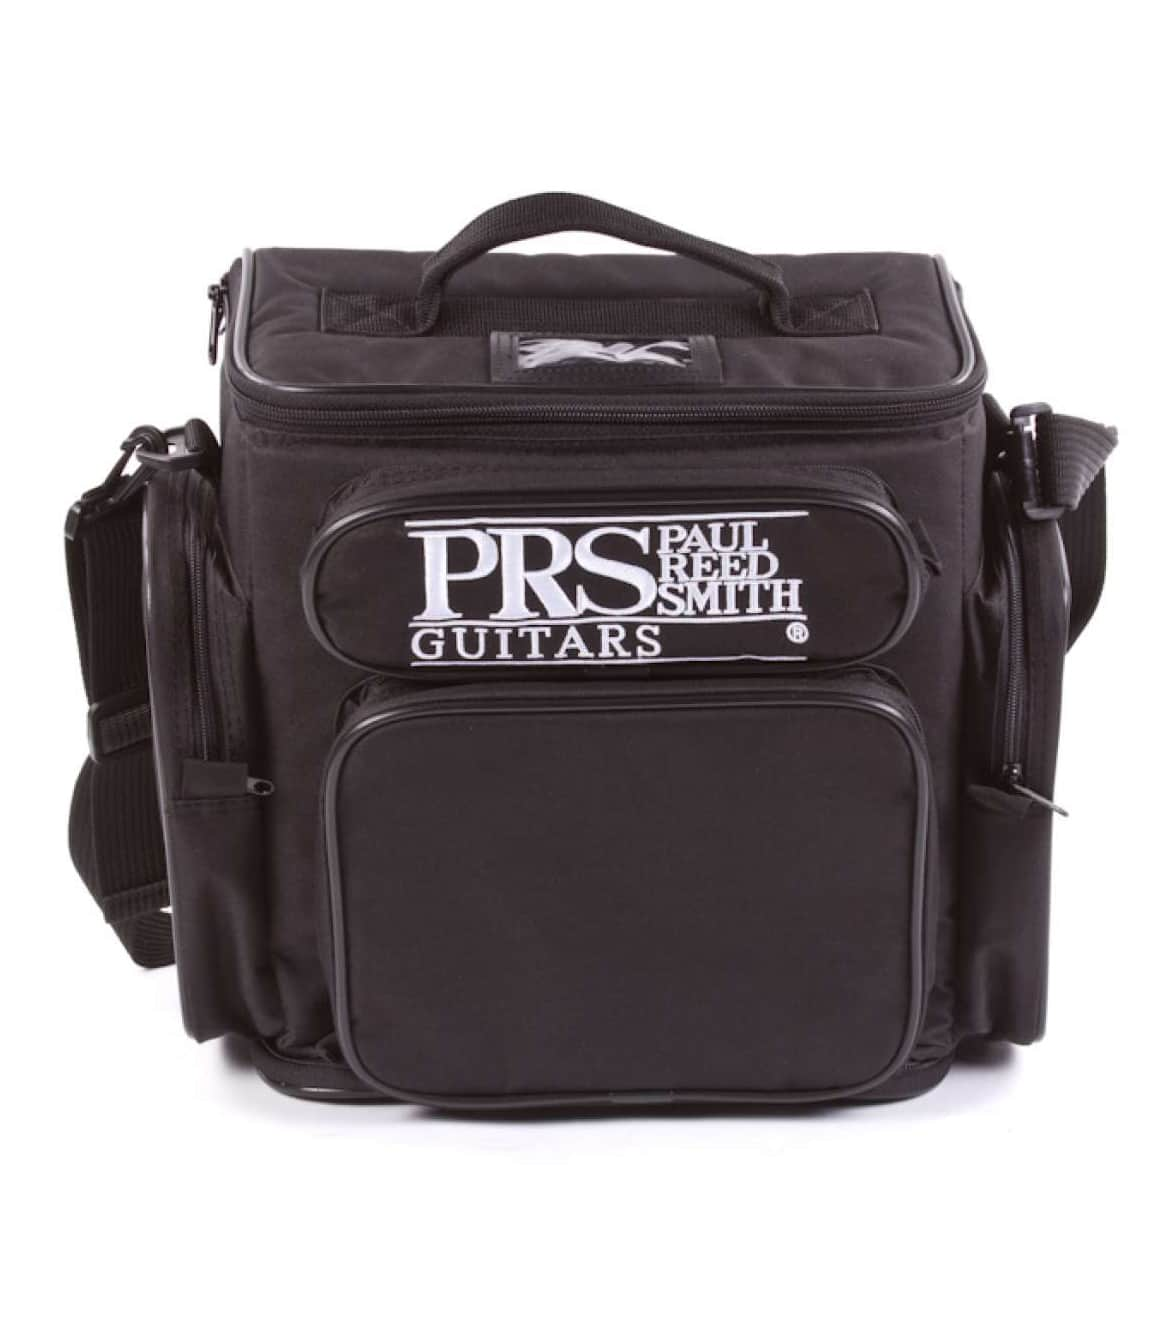 PRS - Cordura Accessory Bag with Logo Black